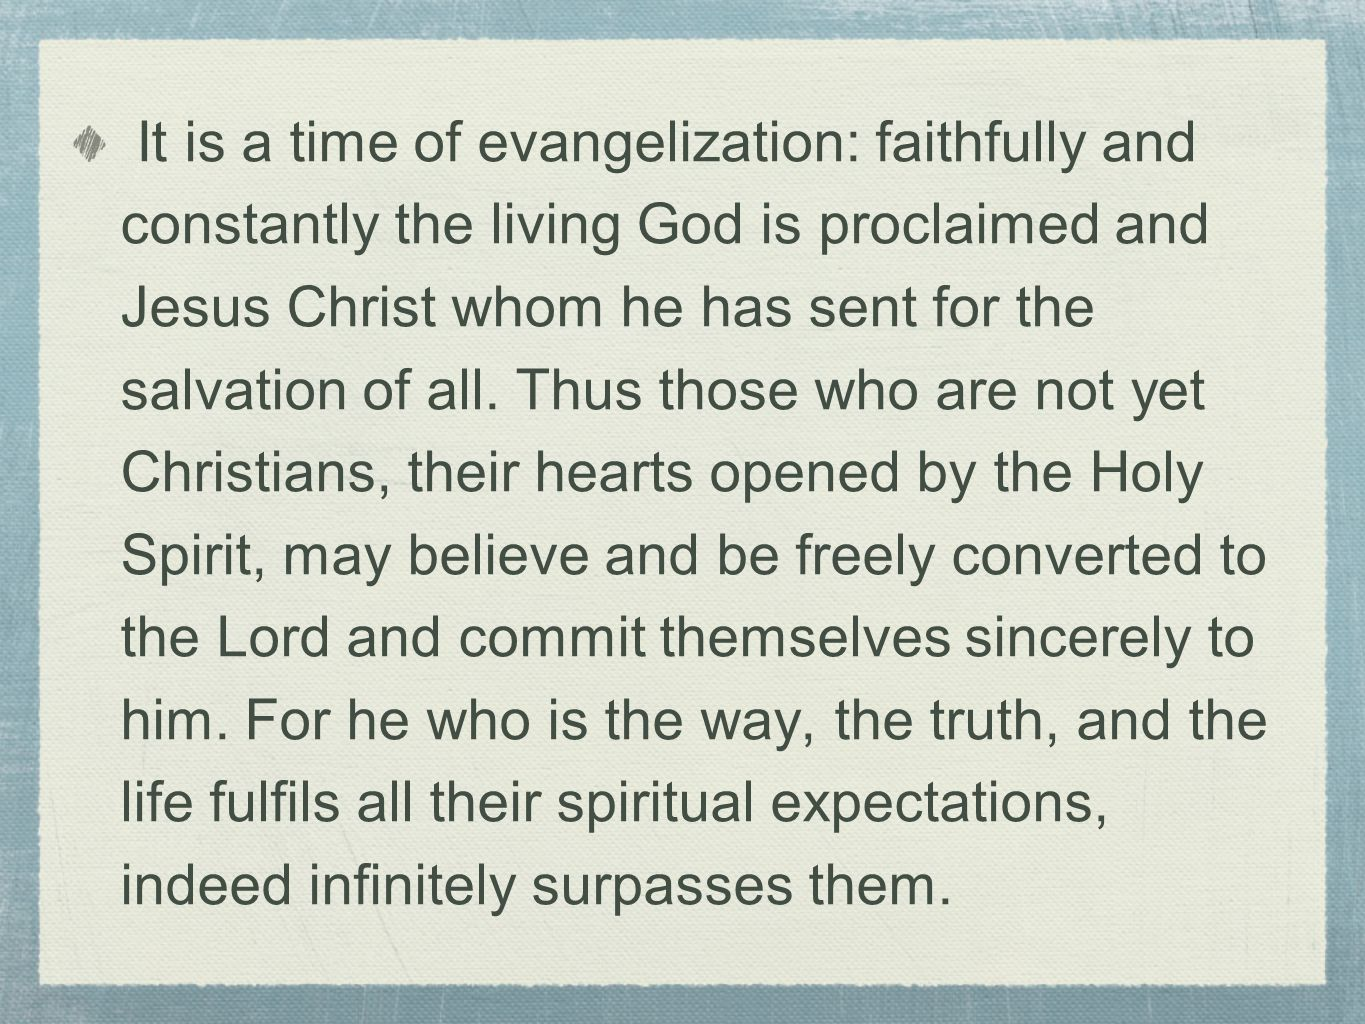 It is a time of evangelization: faithfully and constantly the living God is proclaimed and Jesus Christ whom he has sent for the salvation of all.